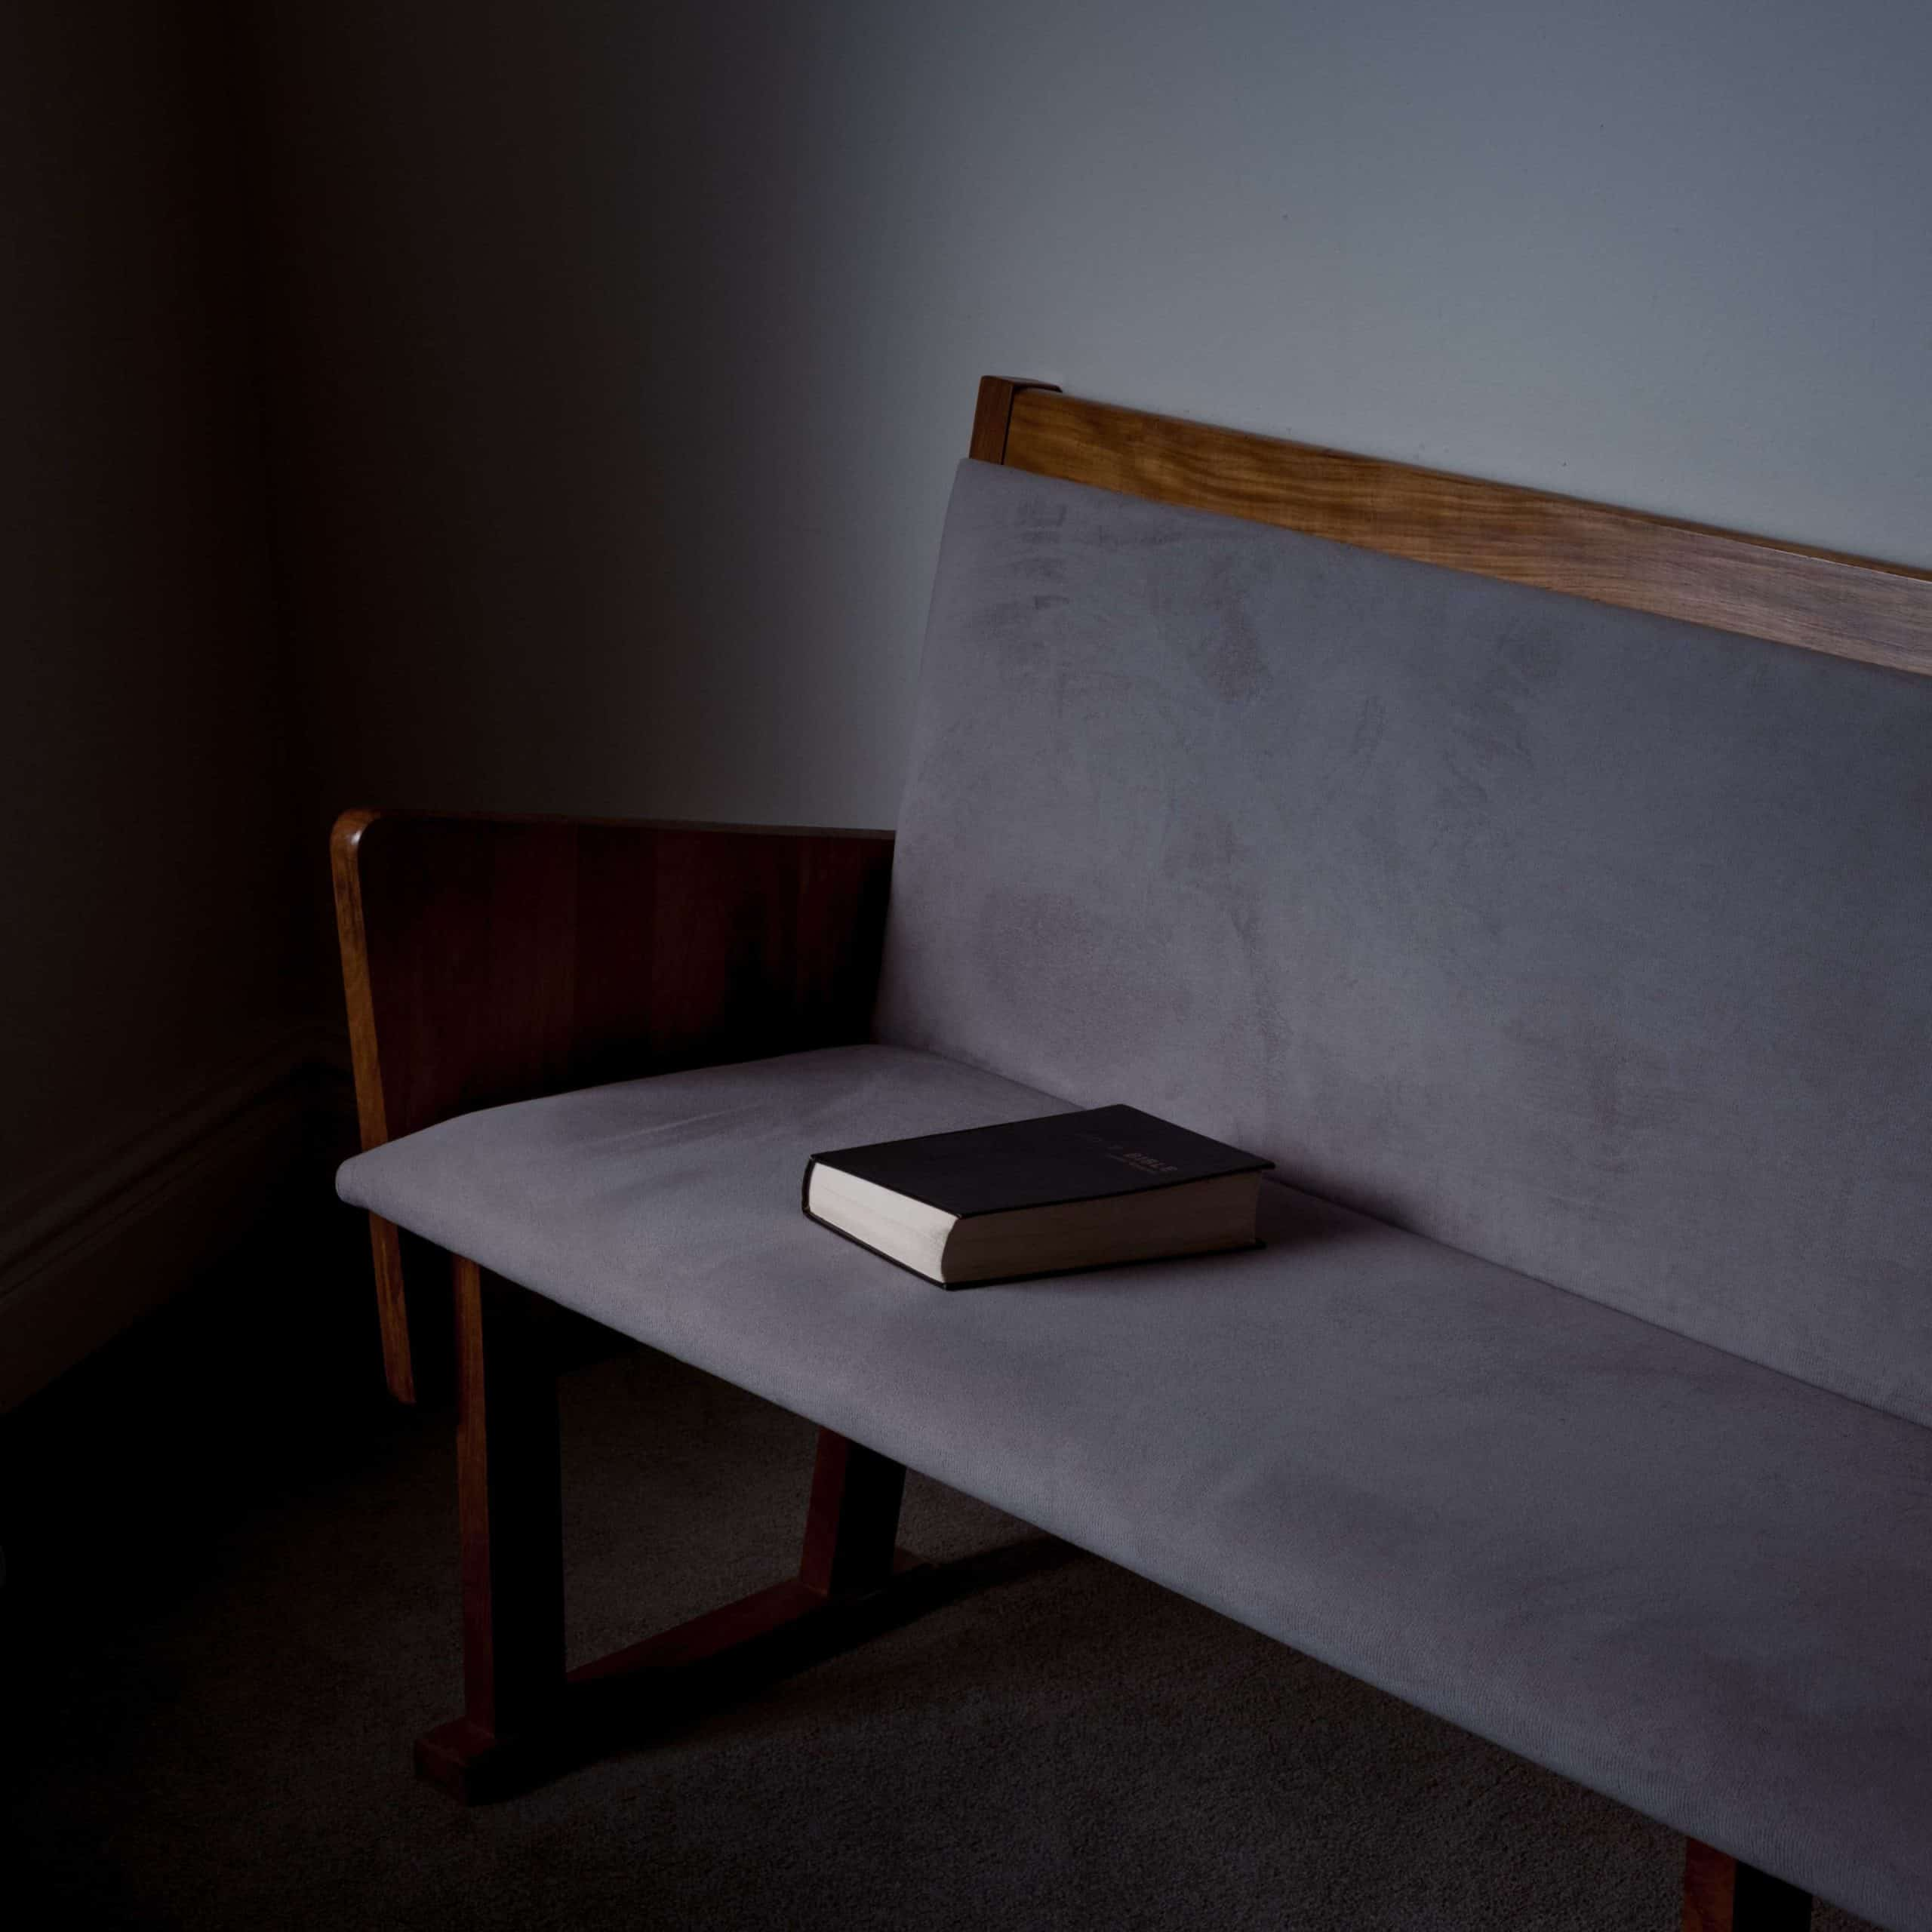 A Bible laying on a church pew.